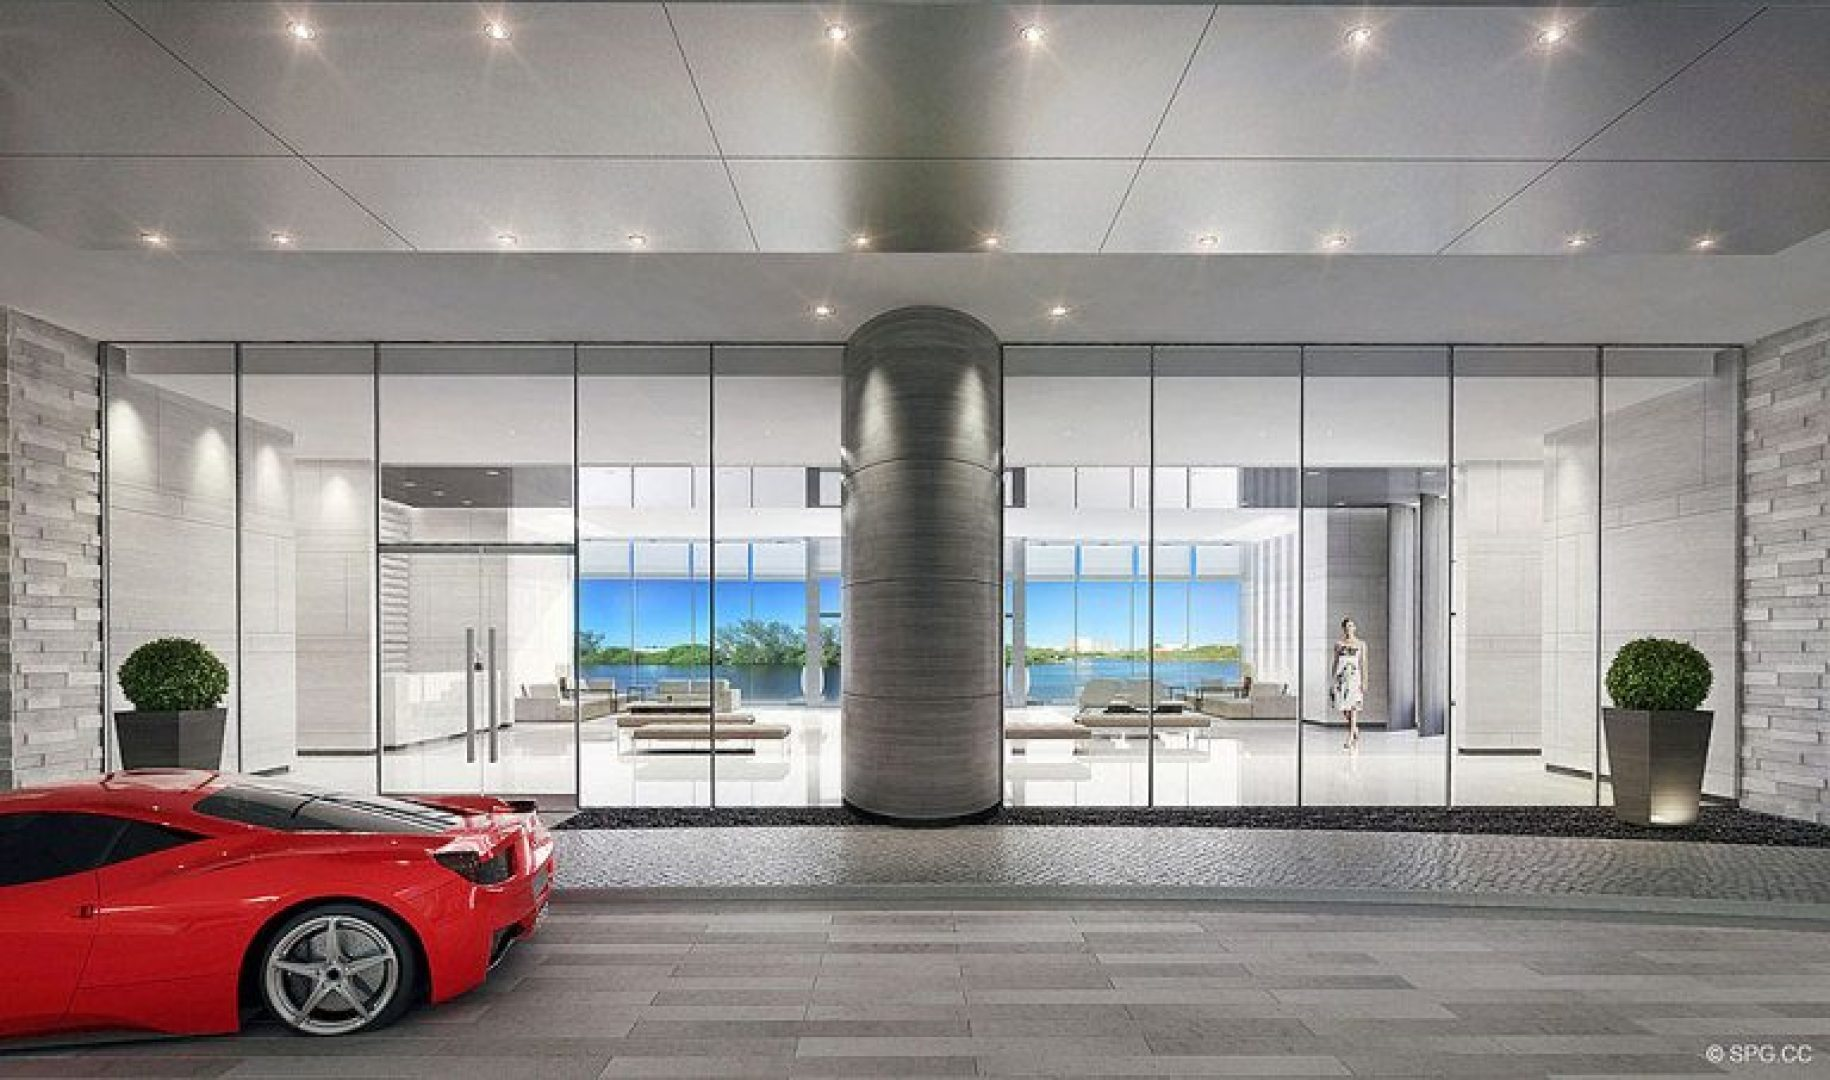 Vehicle Drop-off to Lobby at Riva, Luxury Waterfront Condos in Fort Lauderdale, Florida 33304.